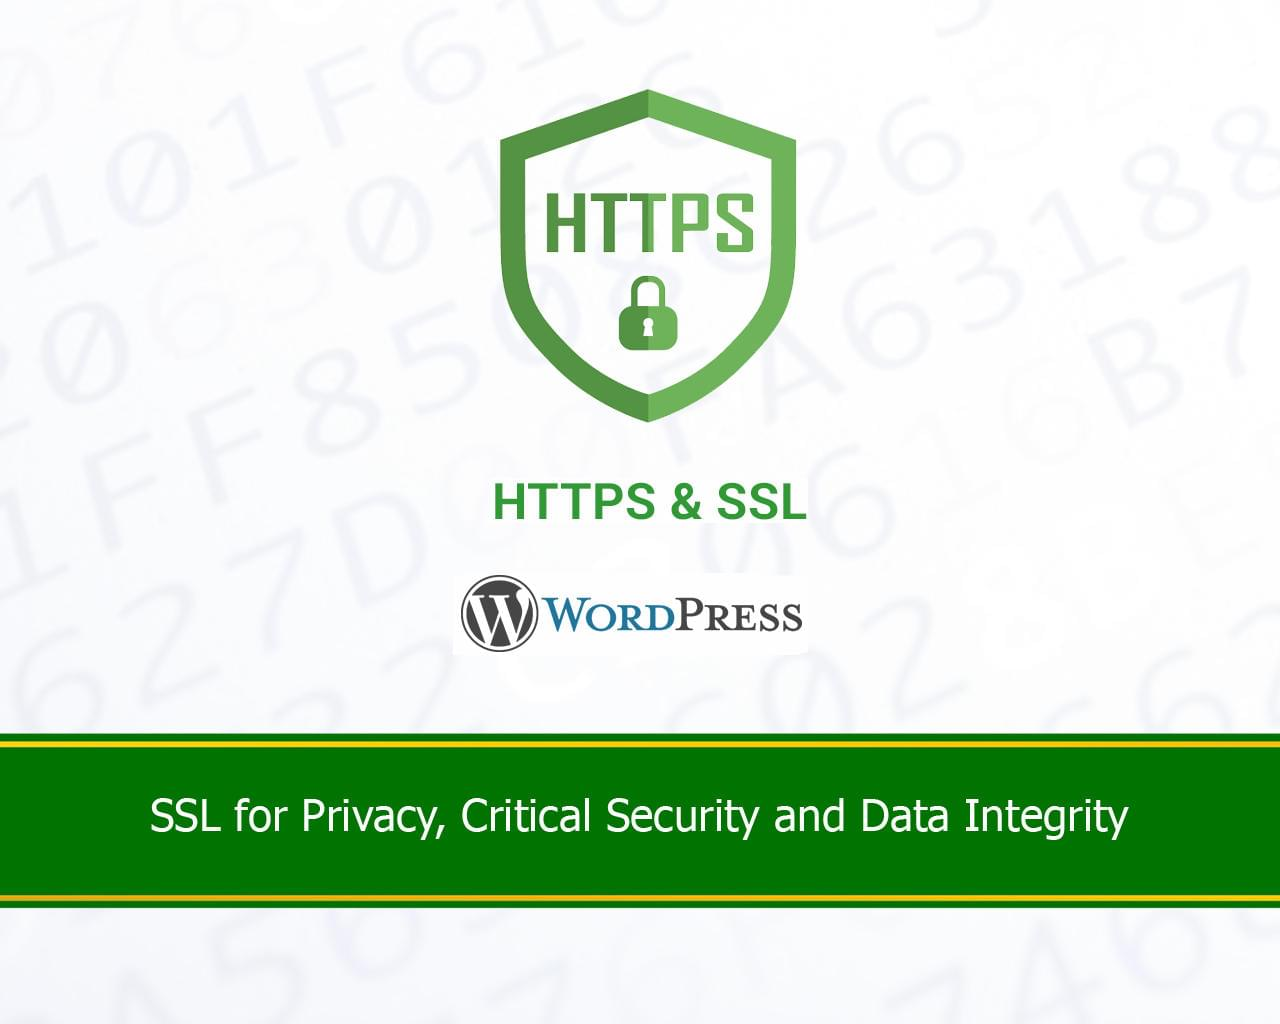 SSL HTTPS Setup and Insecure Connection Fix by nyasro - 115992